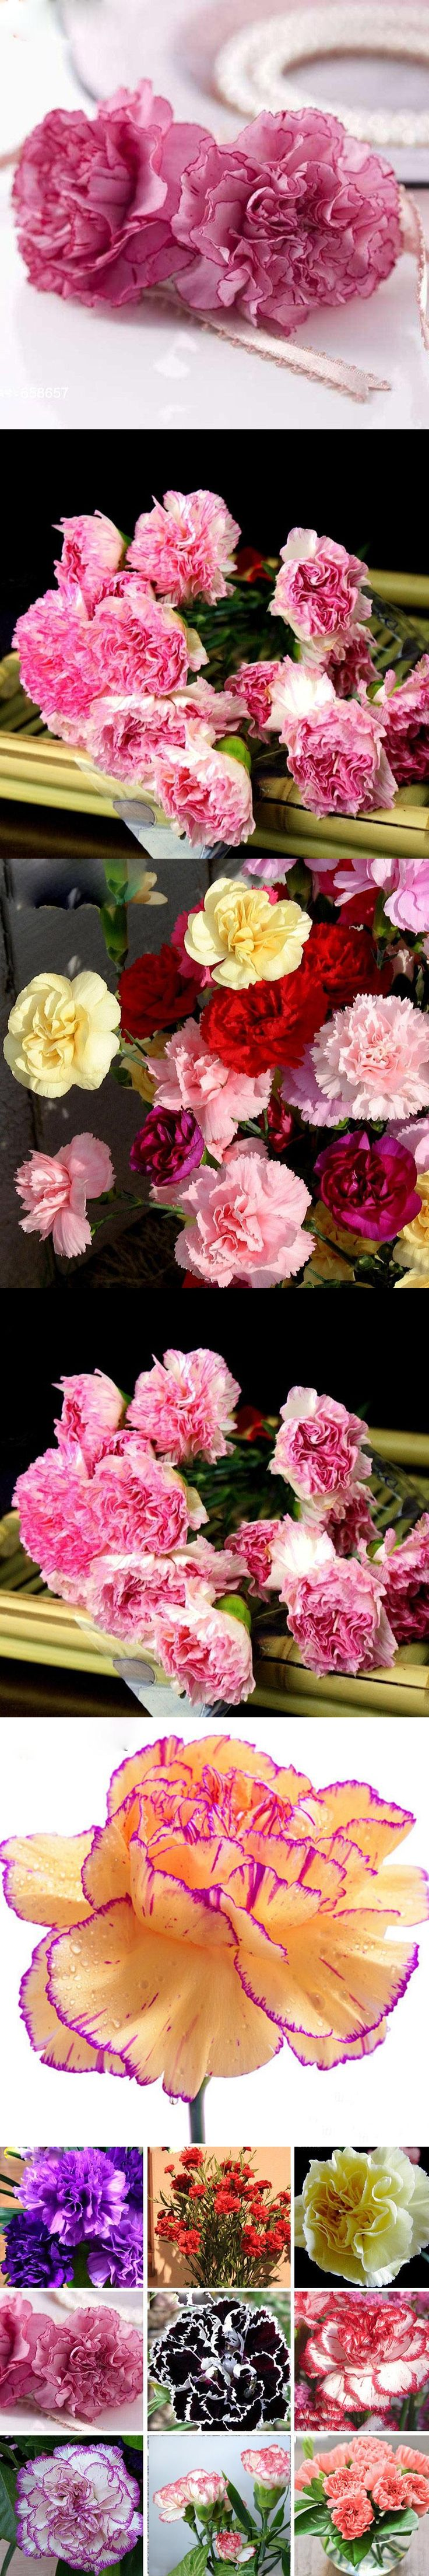 Best 25 dianthus caryophyllus ideas on pinterest carnation hot selling 16 colors available carnation seeds perennial flowers potted garden plants dianthus caryophyllus flower seed biocorpaavc